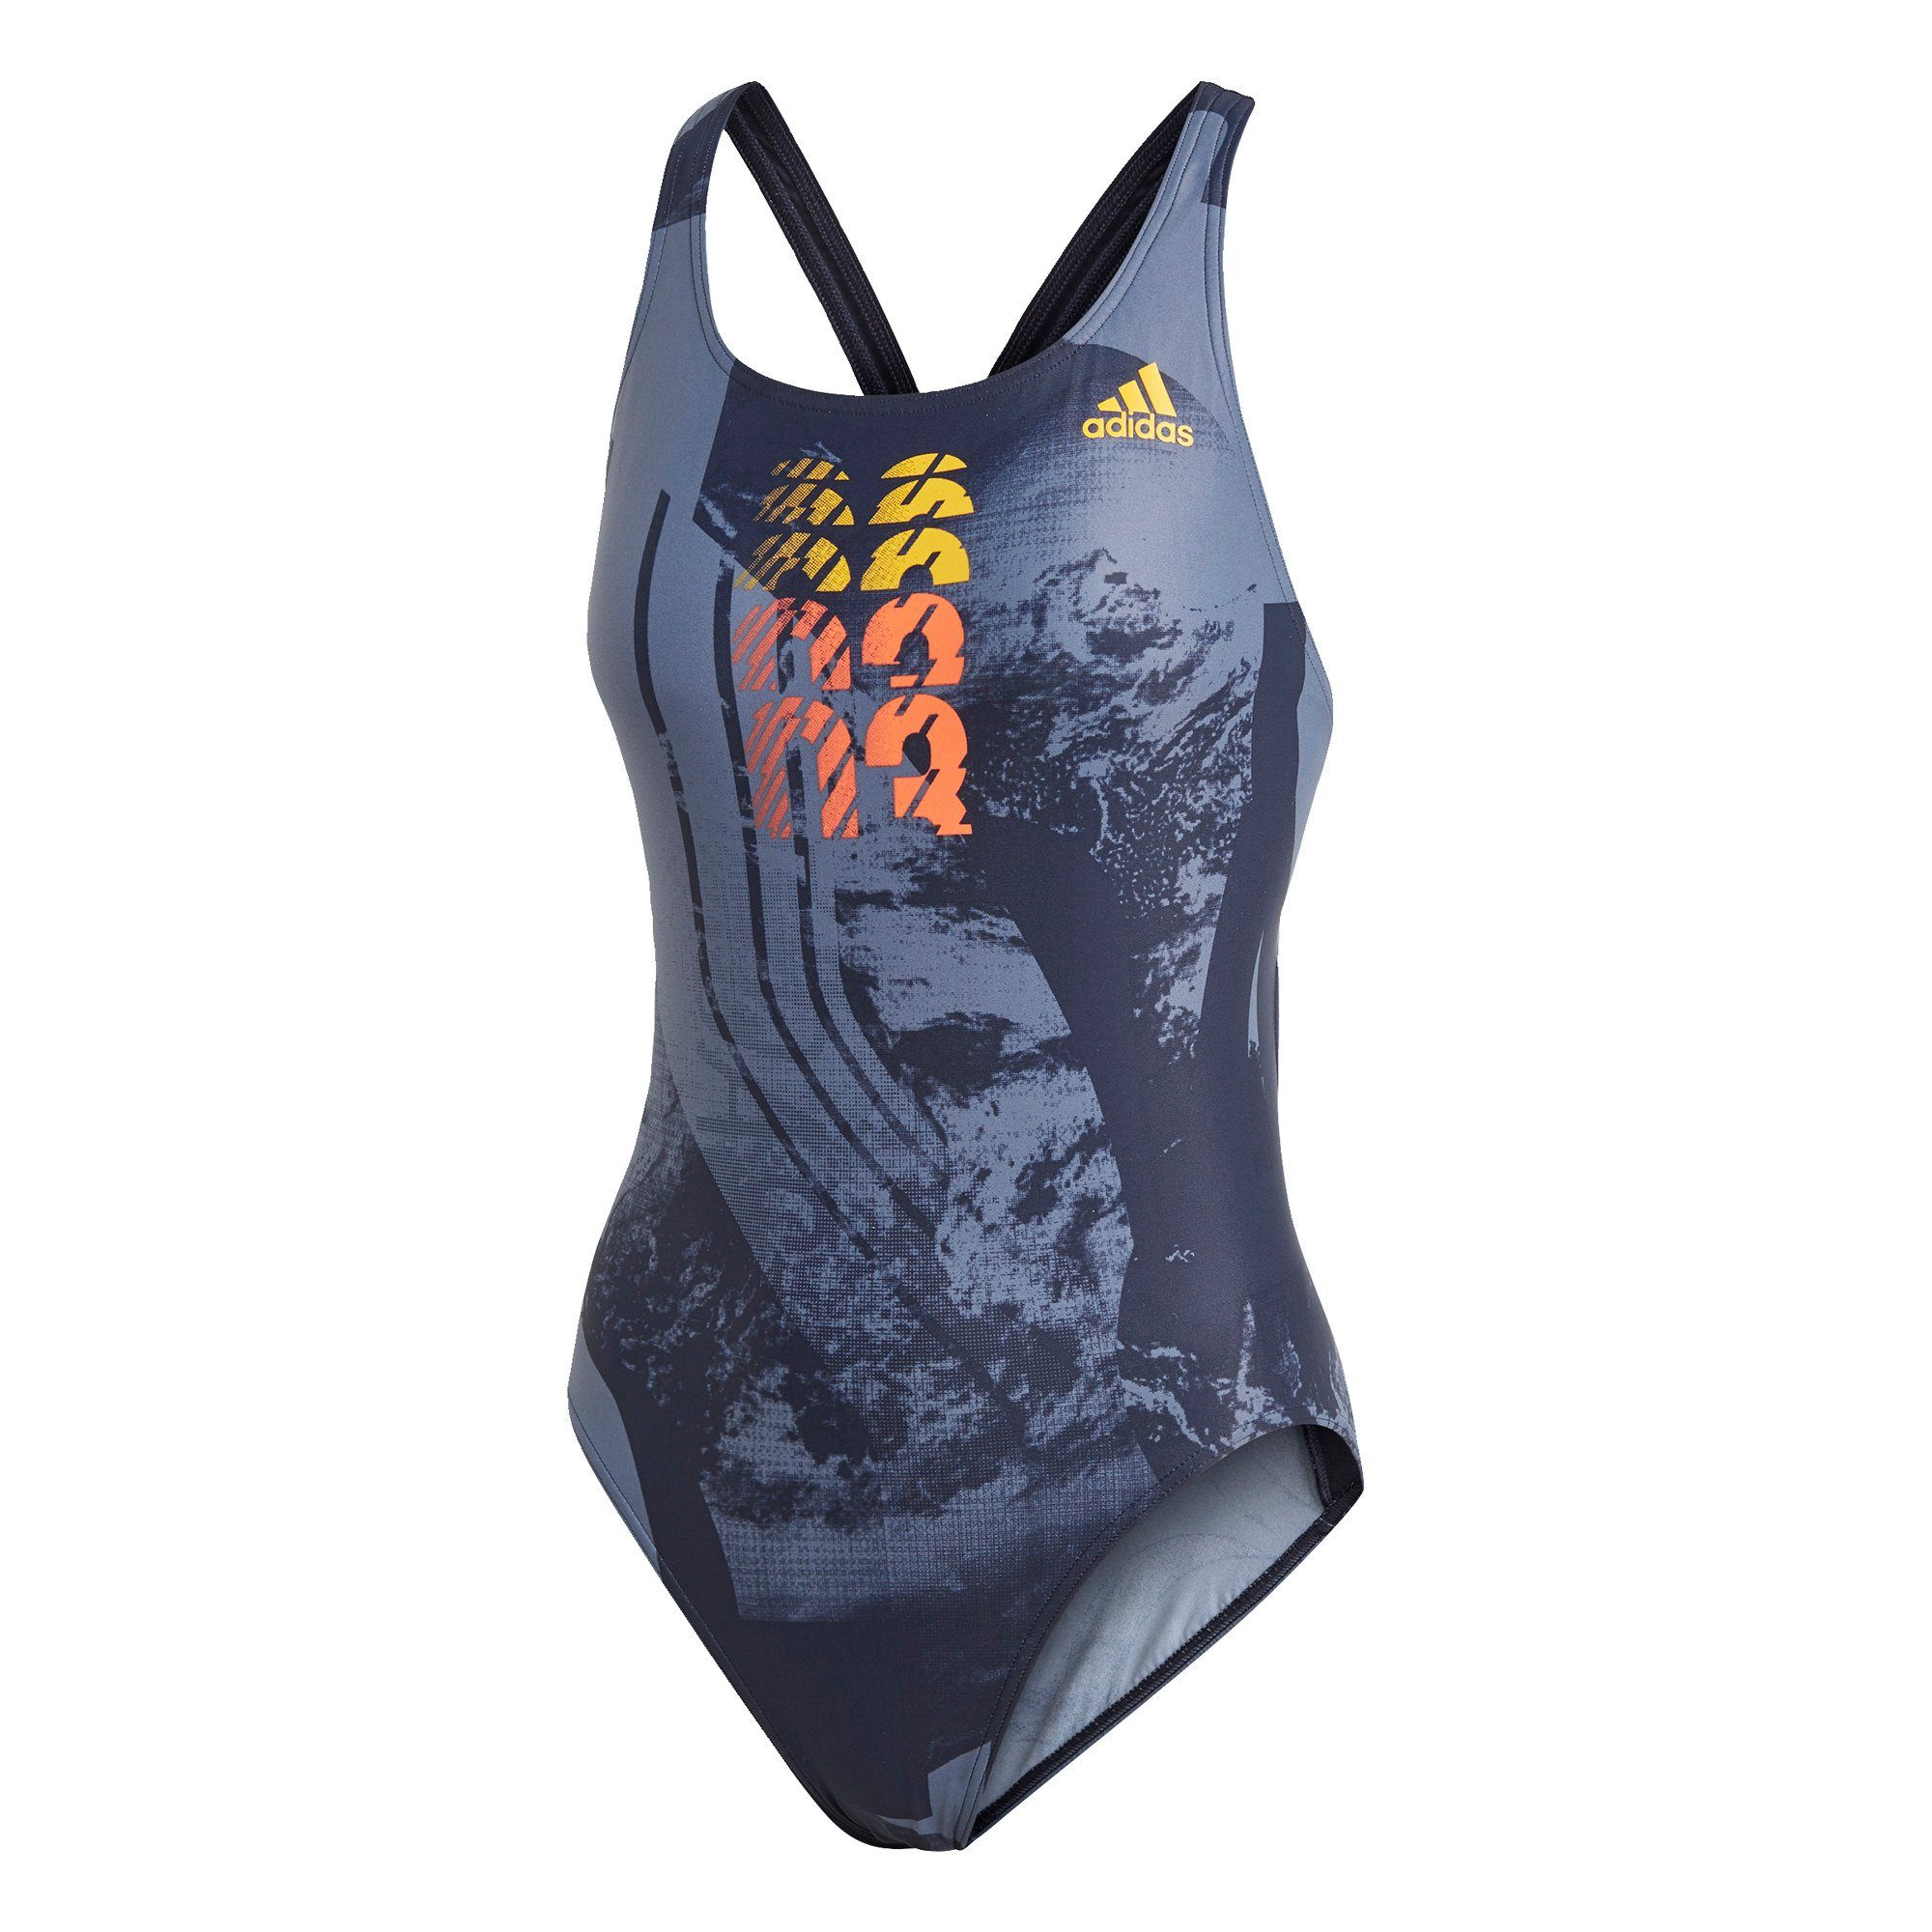 adidas Performance Badeanzug »Adidas Graphic Fitness Swimsuit« online kaufen | OTTO